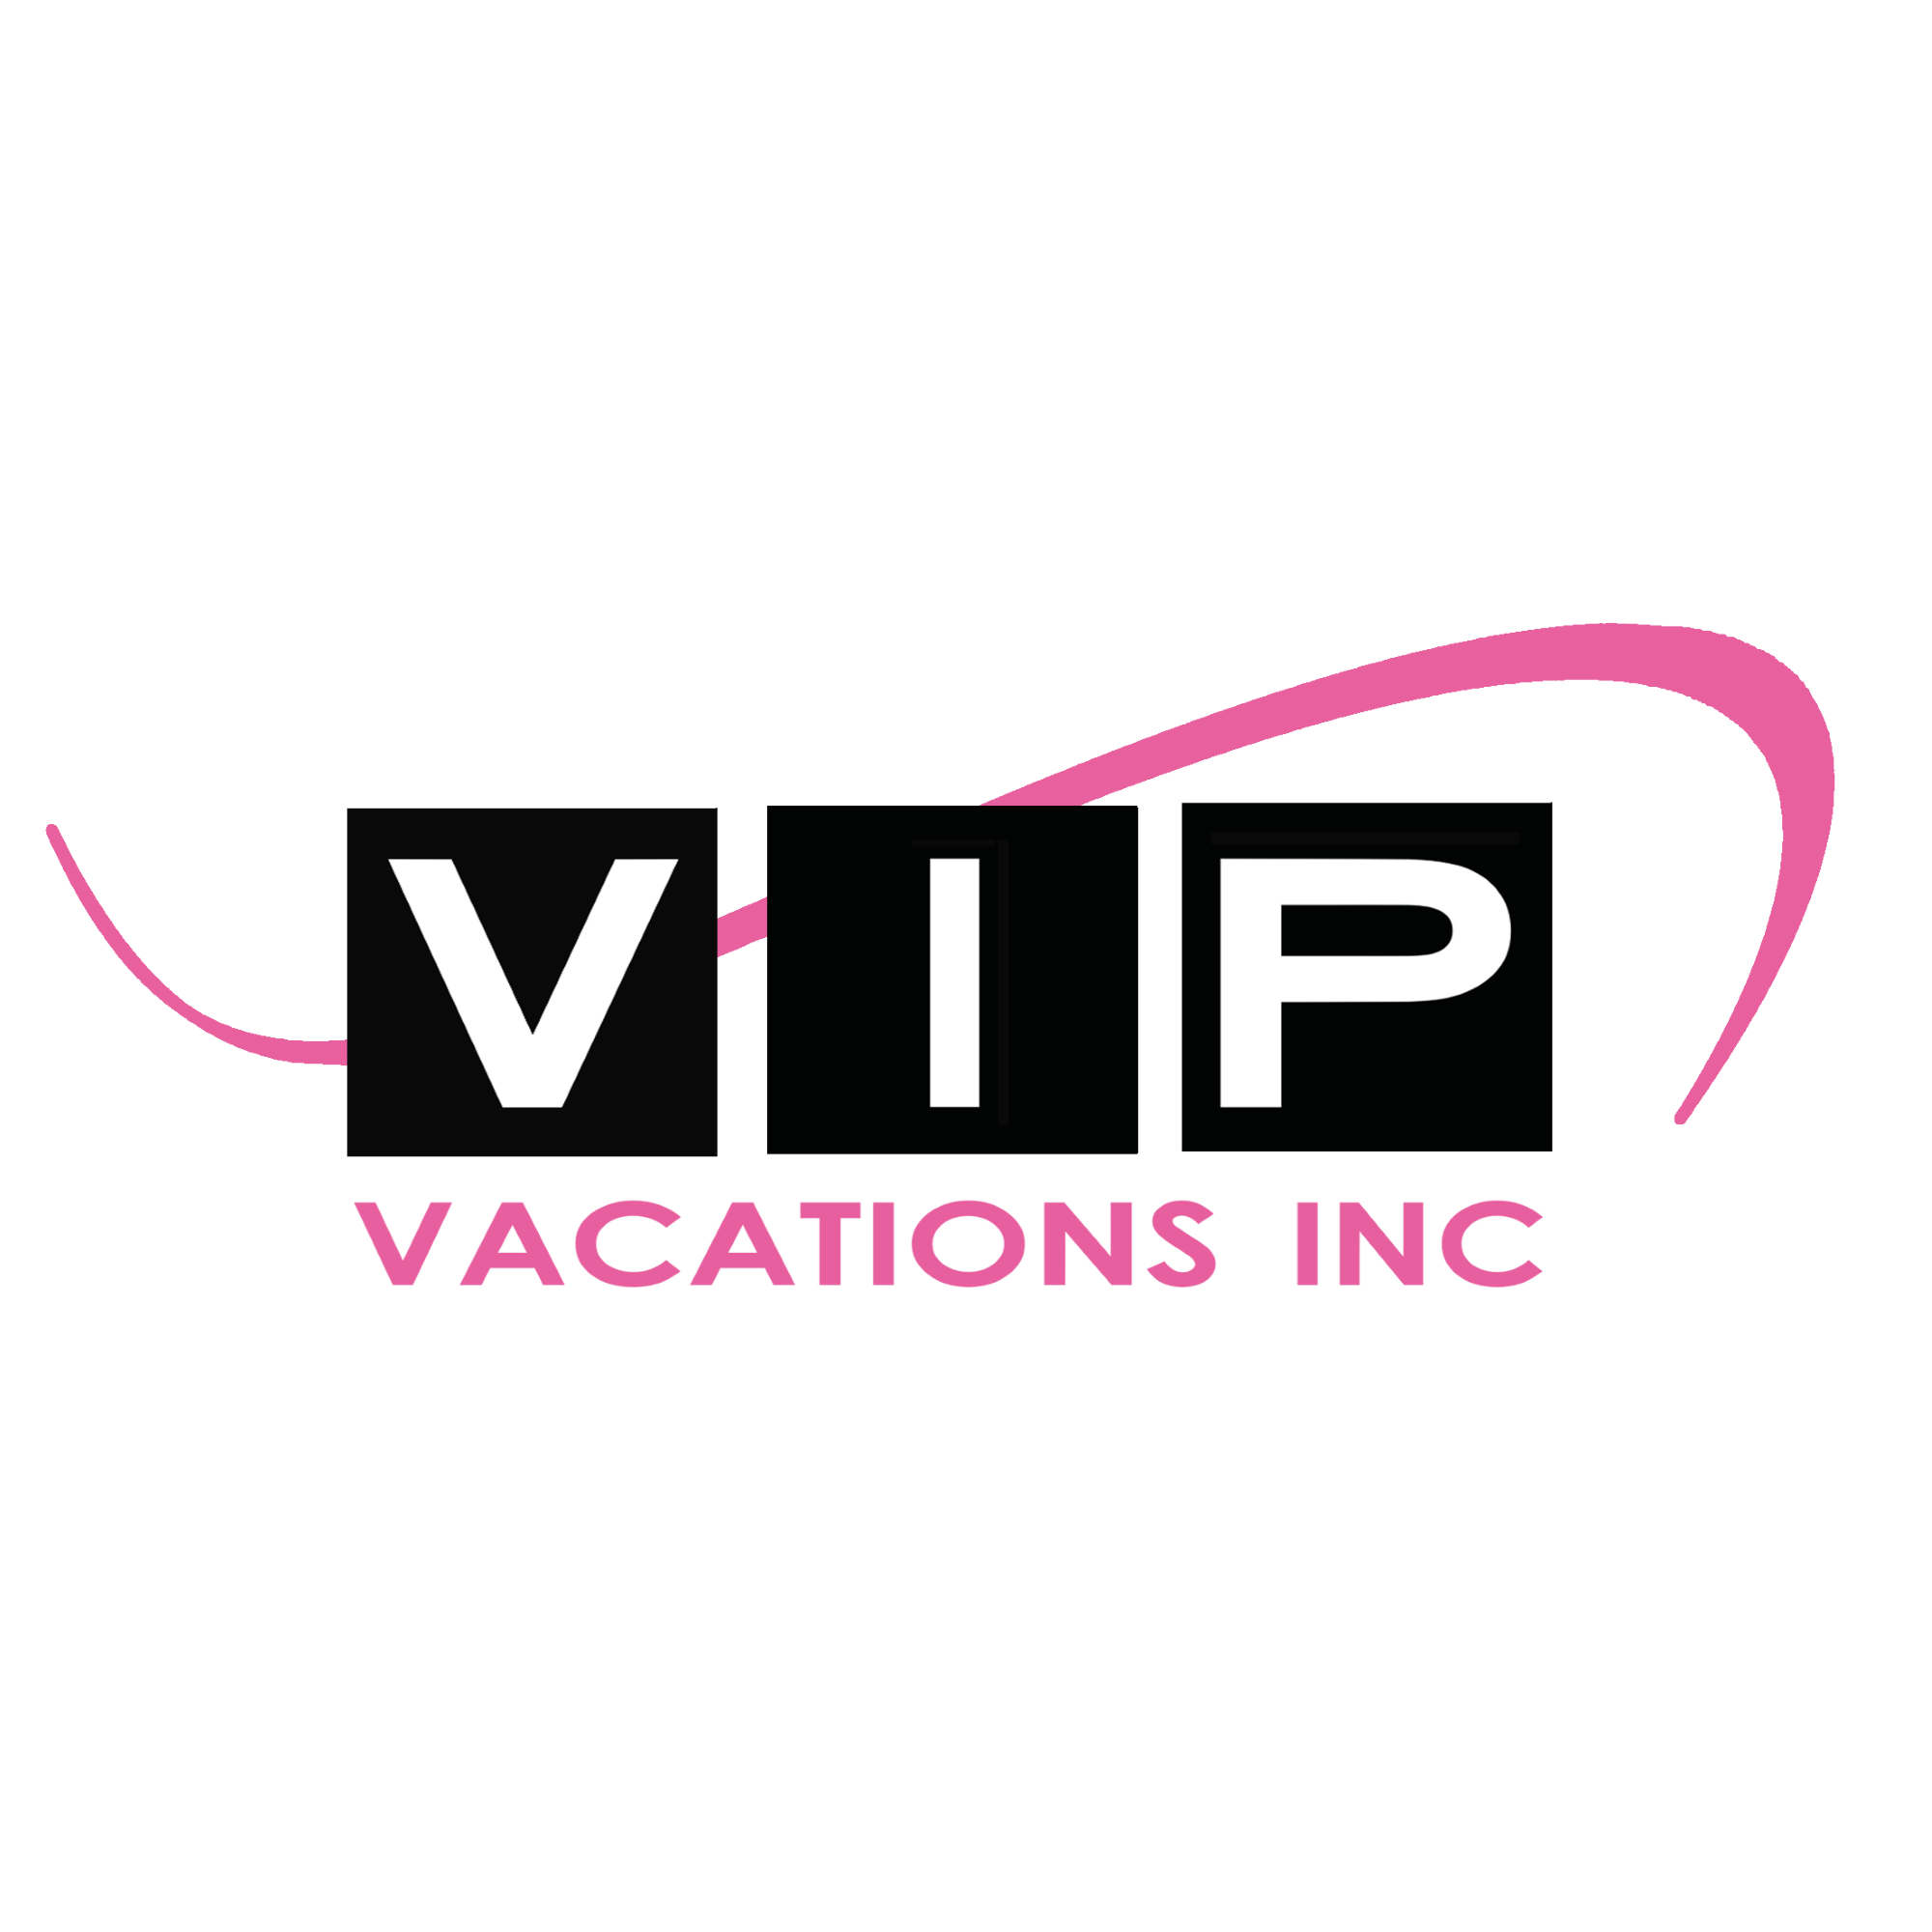 VIP Vacations Inc. Logo